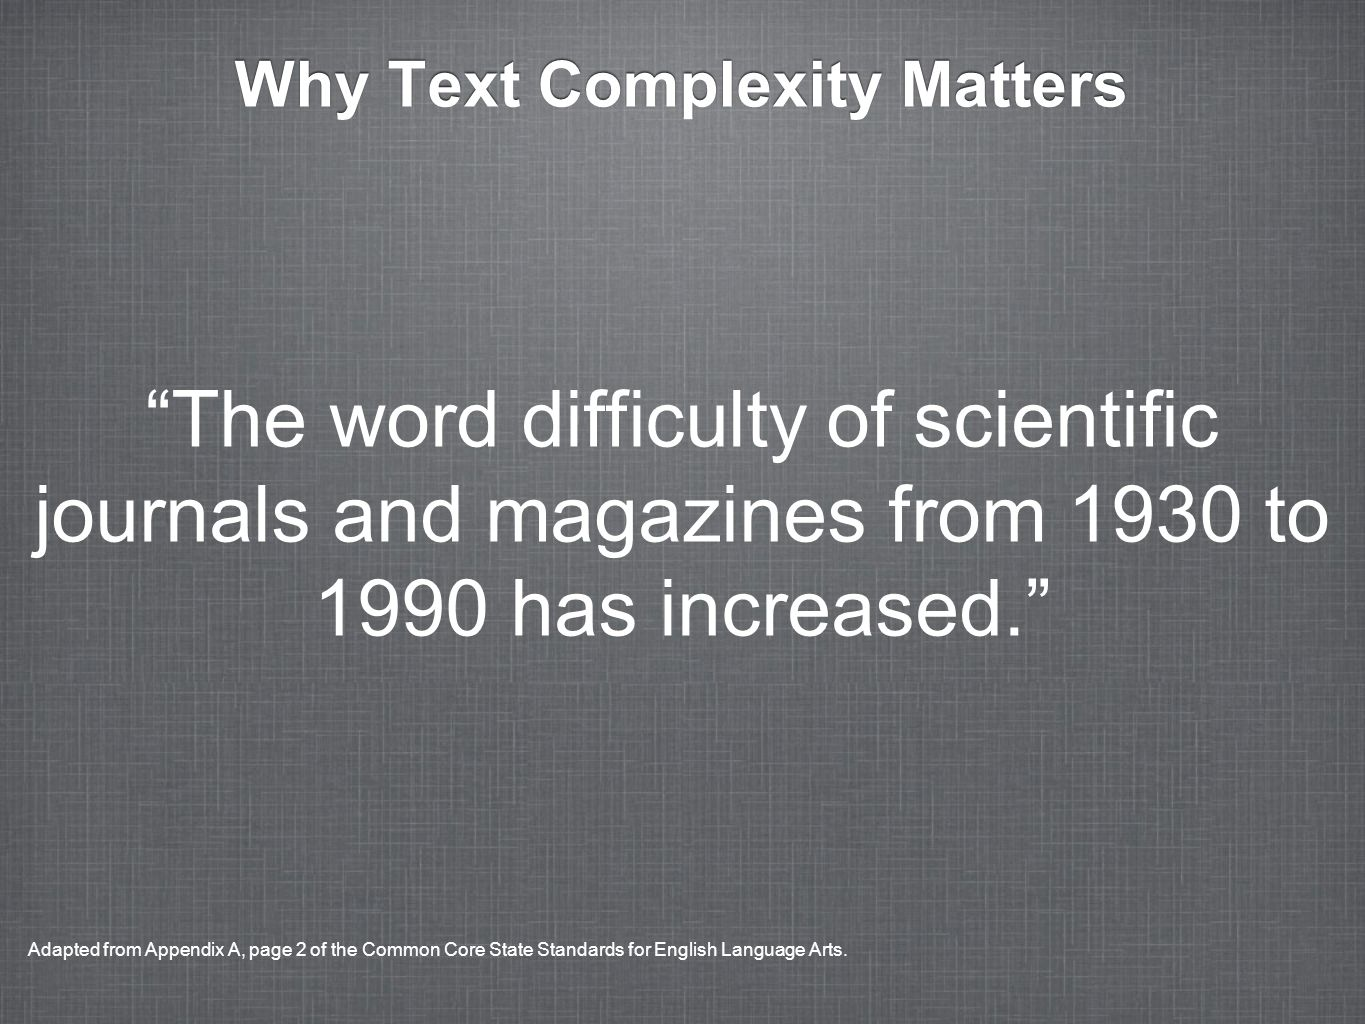 Why Text Complexity Matters The word difficulty of scientific journals and magazines from 1930 to 1990 has increased. Adapted from Appendix A, page 2